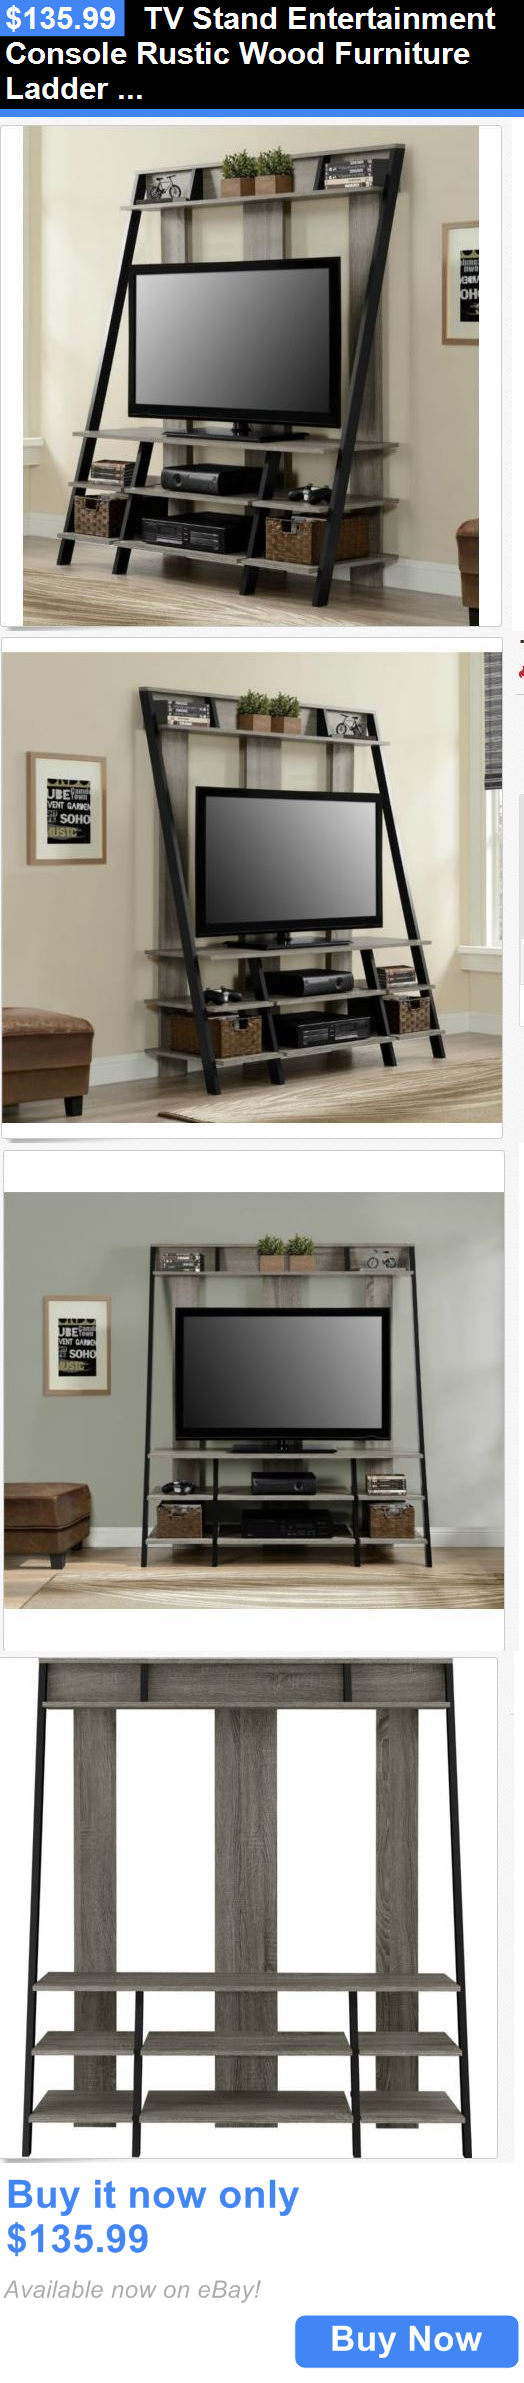 Entertainment units tv stands tv stand entertainment console rustic wood furniture ladder shelf urban modern